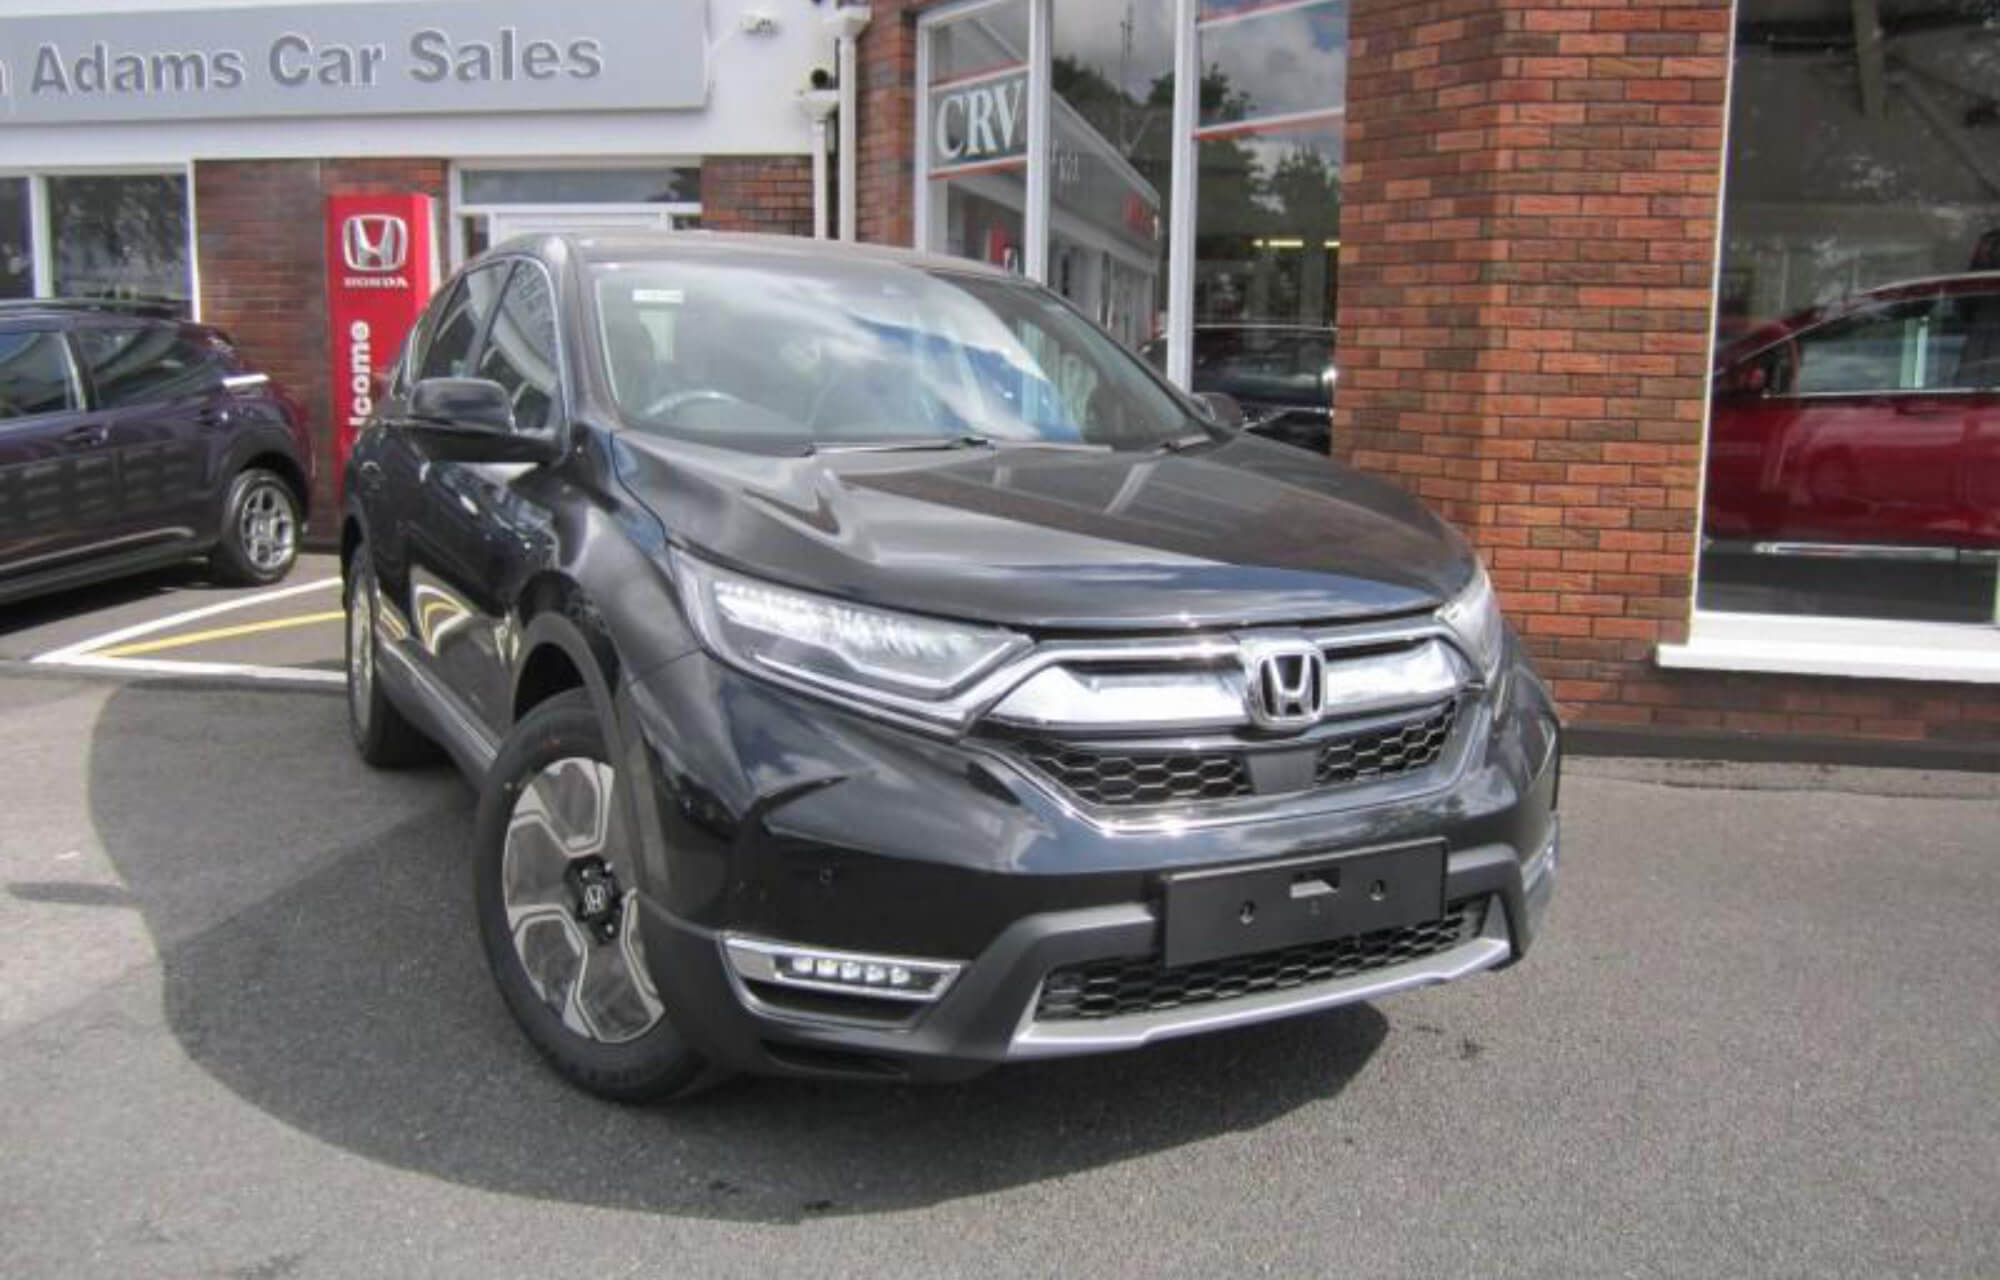 2019 CR-V Hybrid Lifestyle available now